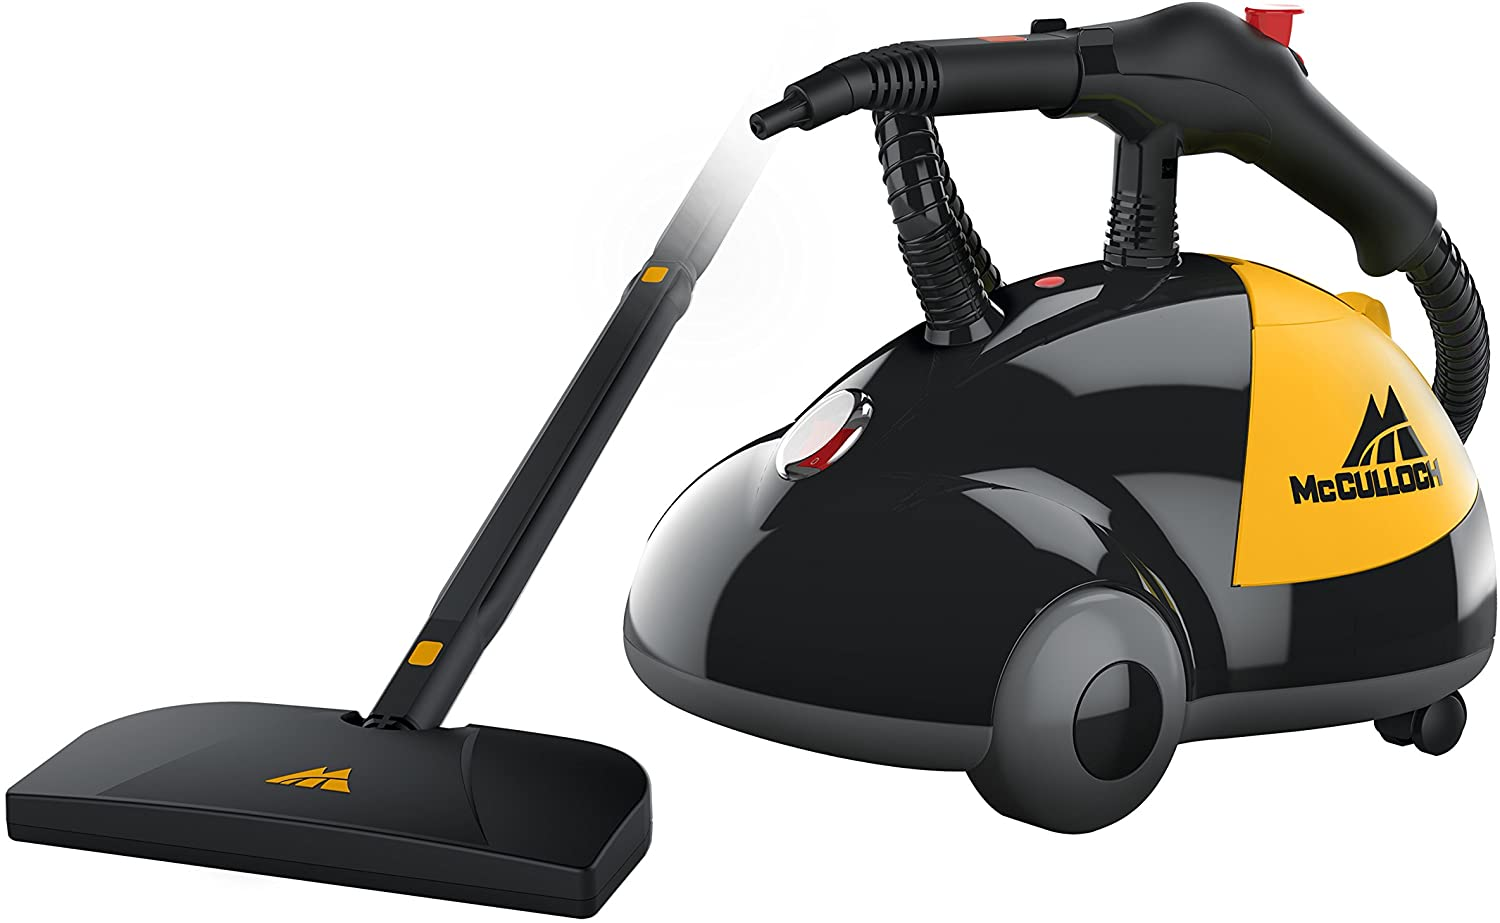 McCulloch MC1275 Heavy-Duty Steam Cleaner with 18 Accessories, Extra-Long Power Cord, Chemical-Free Pressurized Cleaning